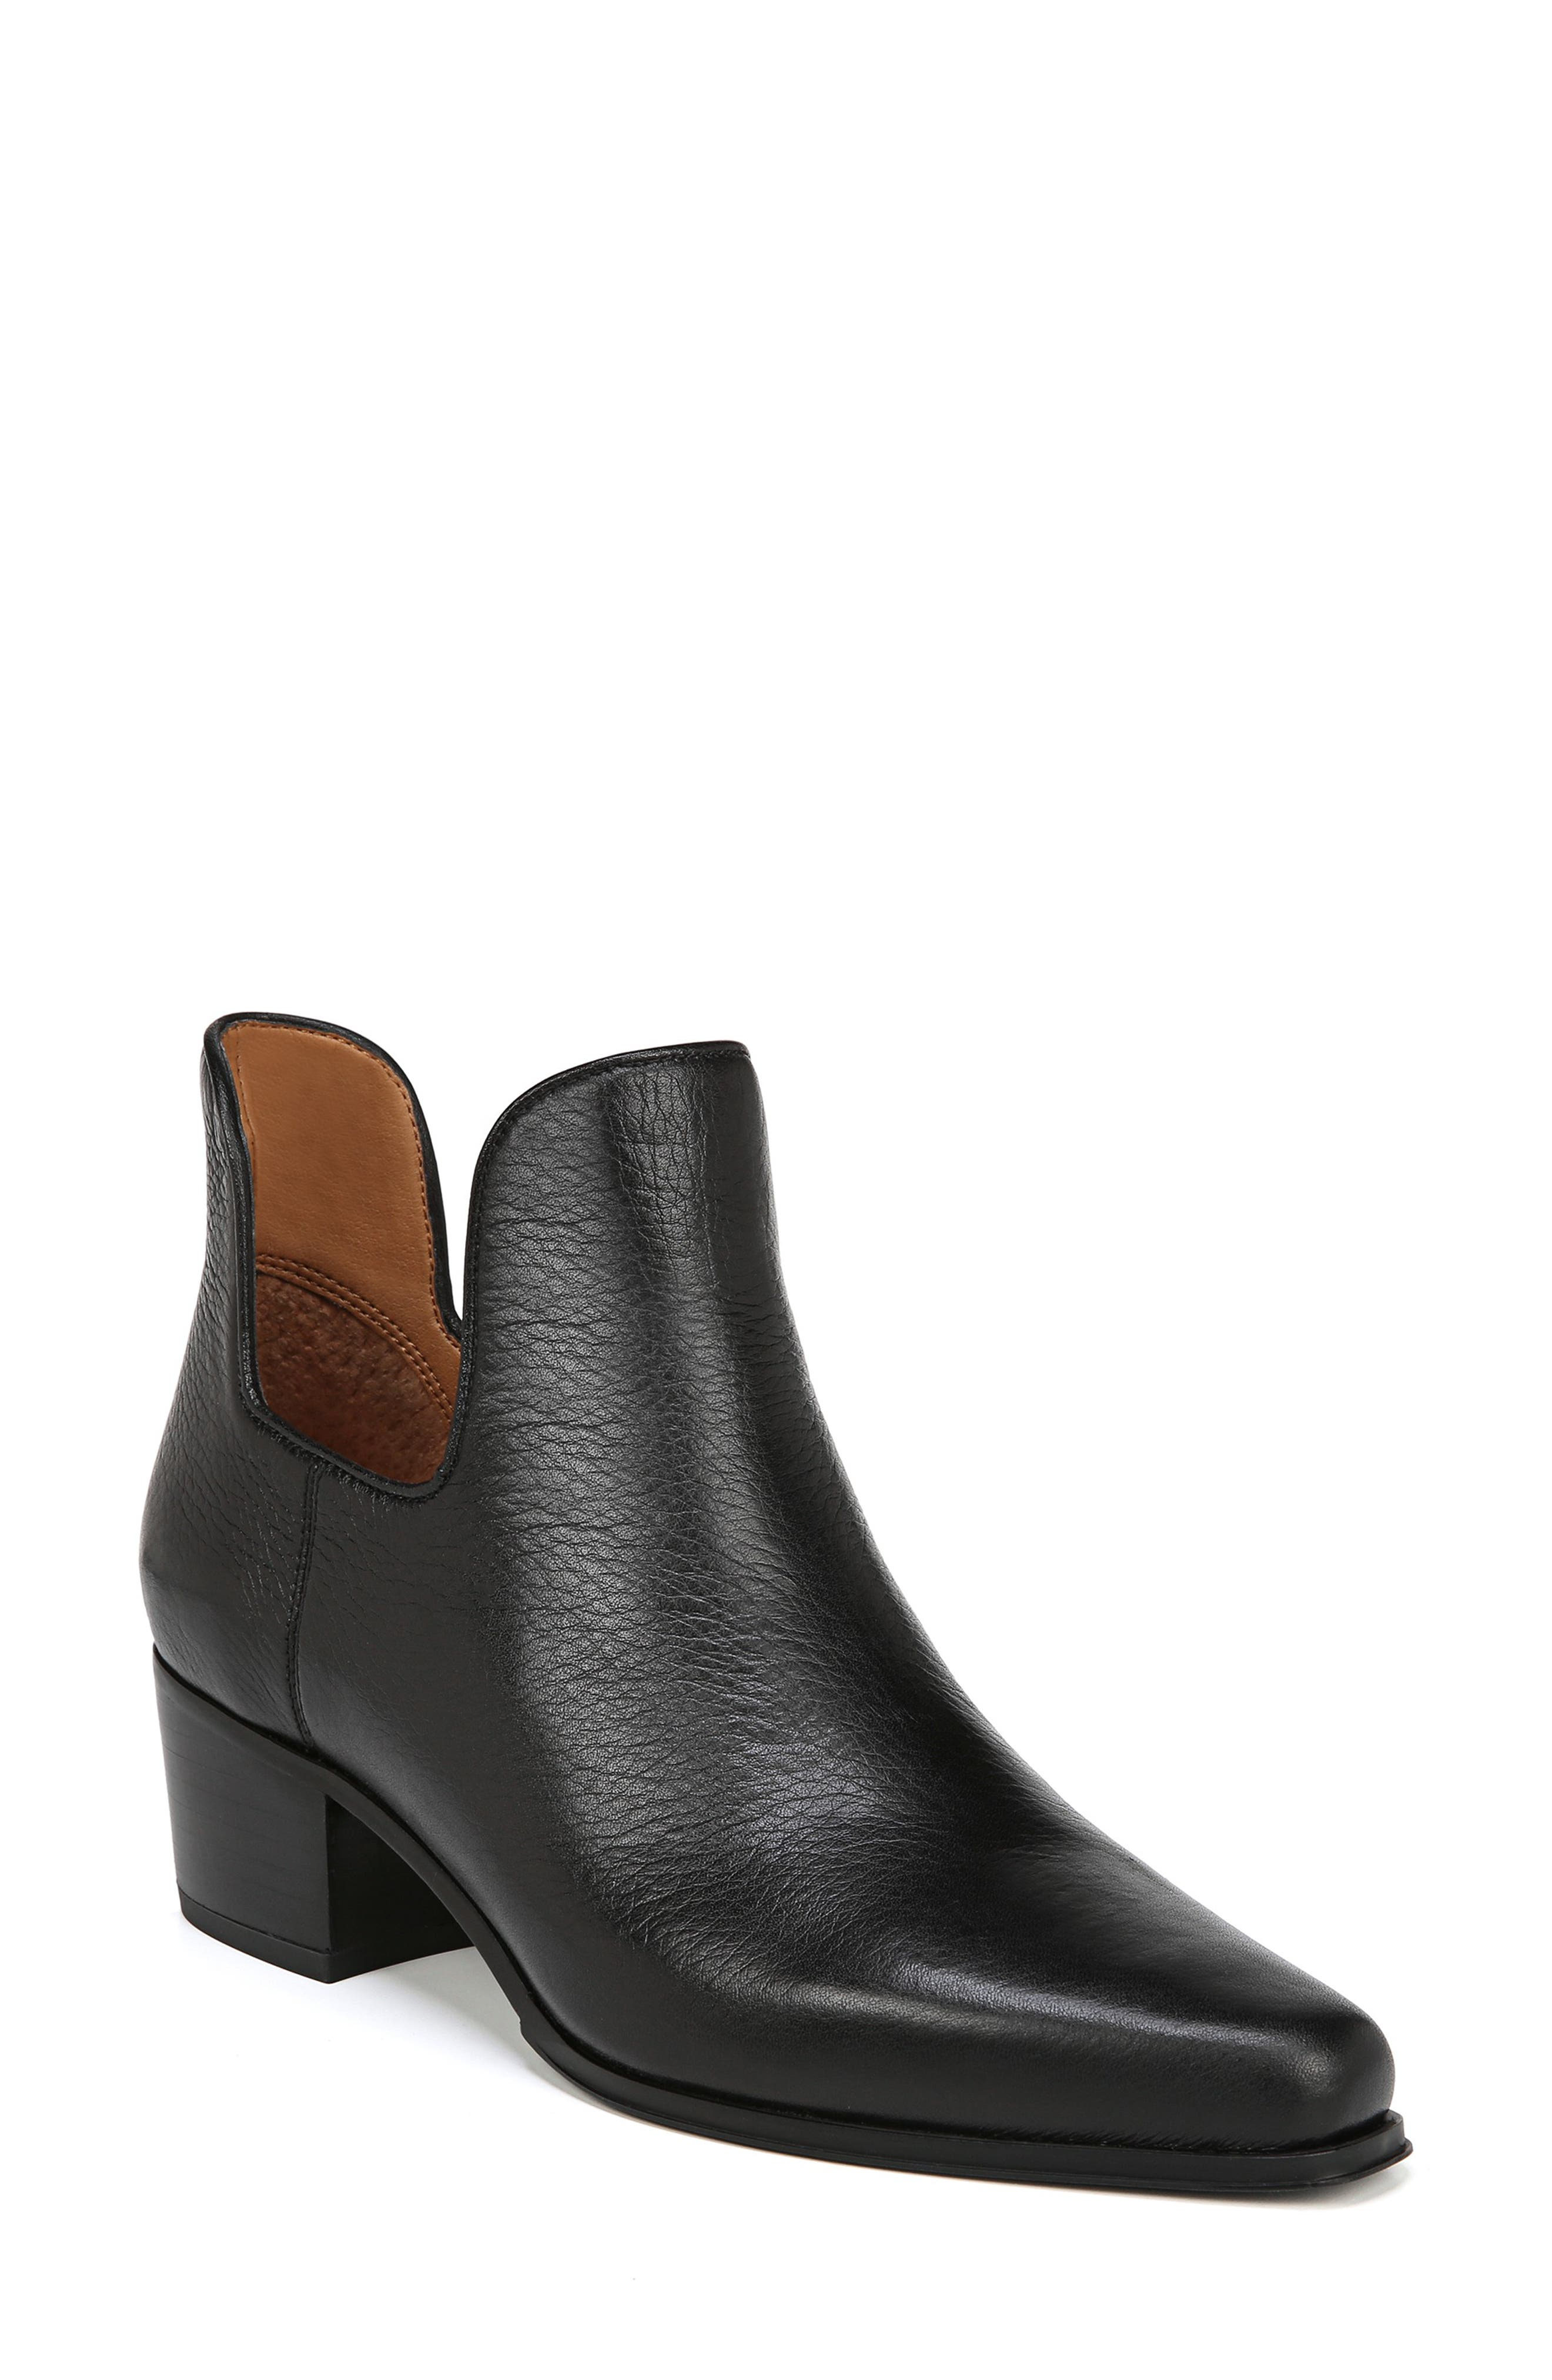 Ashbury Bootie,                             Main thumbnail 1, color,                             BLACK TUMBLED LEATHER